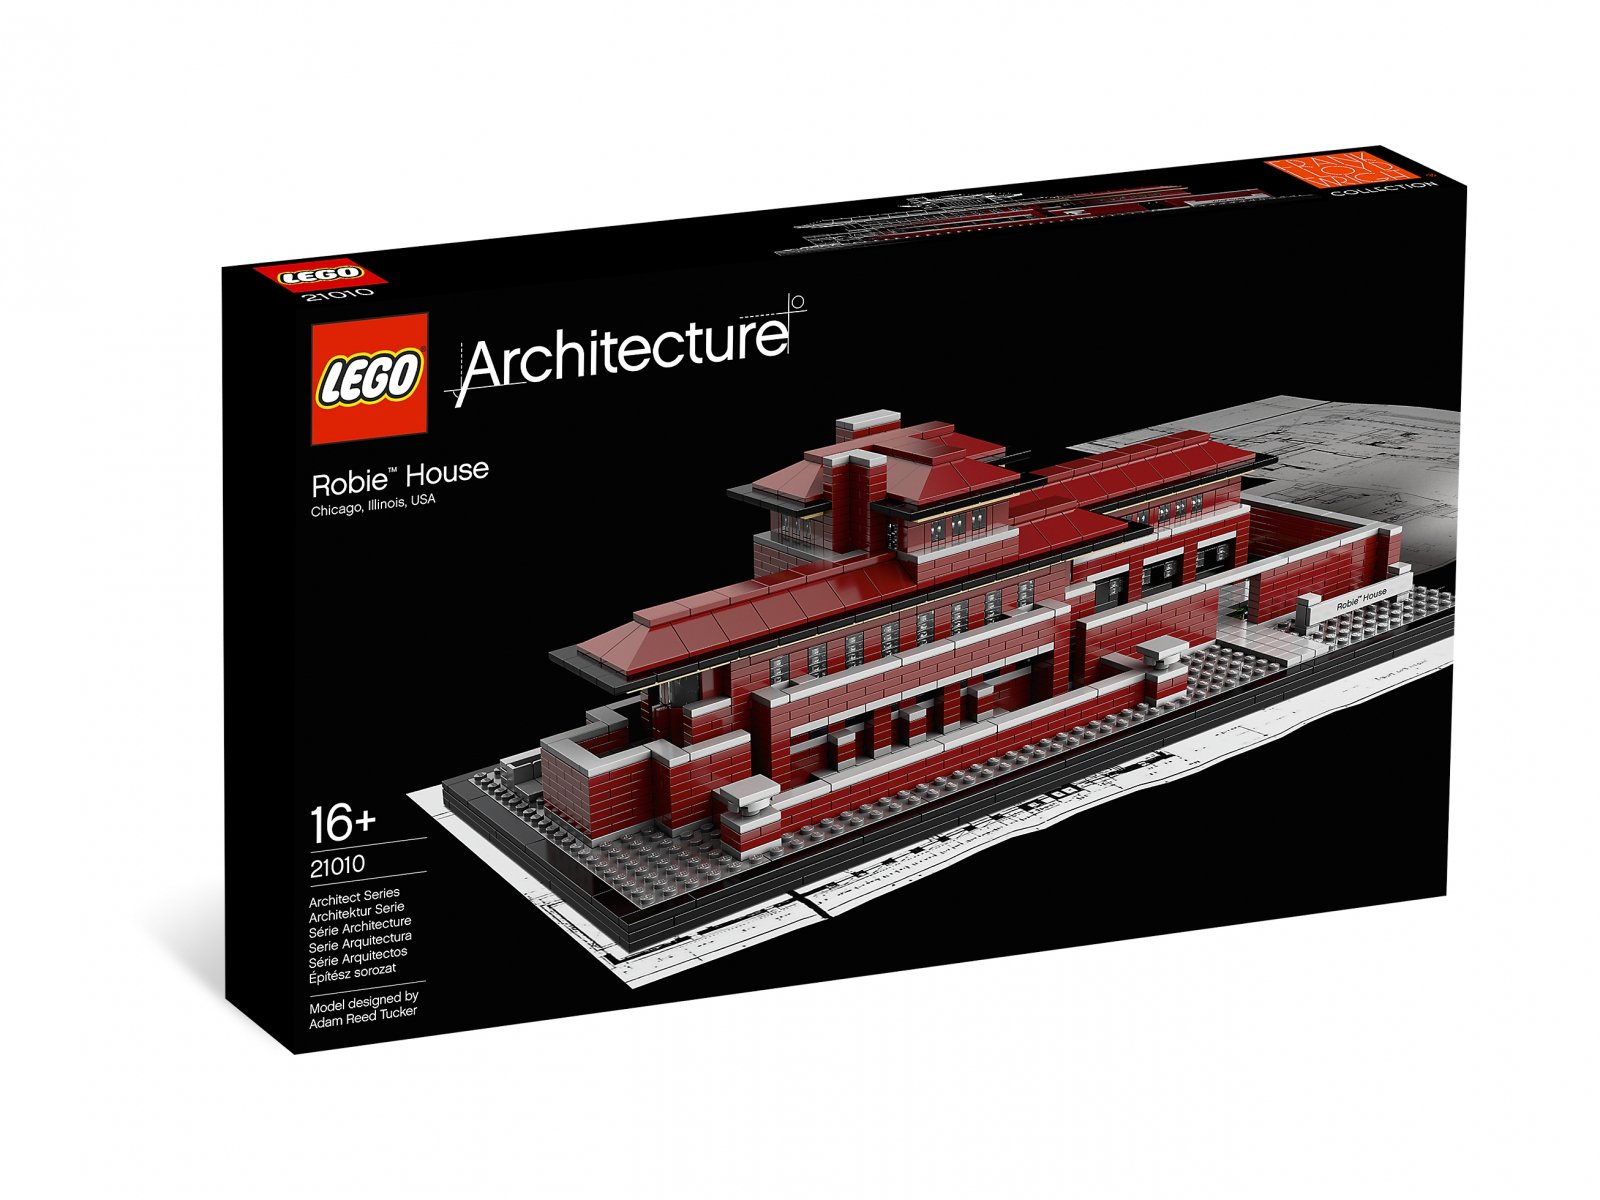 LEGO Architecture Robie™ House 21010